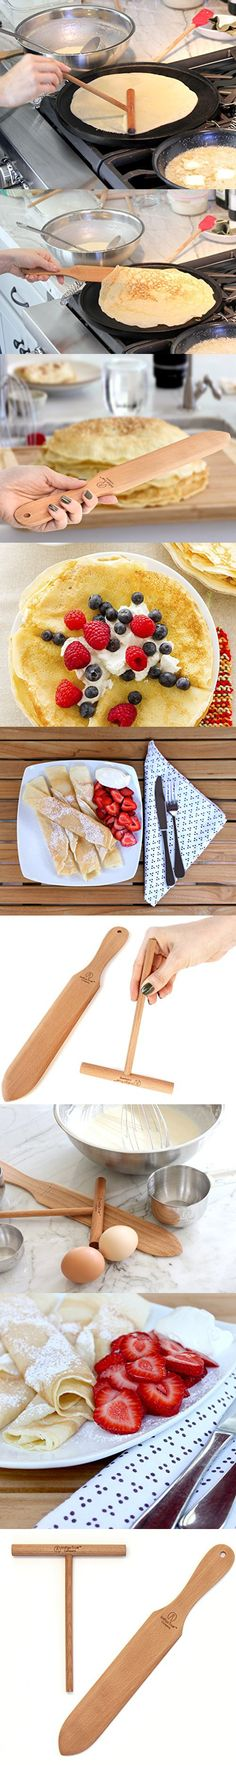 Crepe Making Kit 2-Piece Set (6-inch Crepe Spreader and 14-inch Spatula) Convenient Size to Fit Large Crepe Pan Maker   All Natural Beechwood Construction only From Indigo True Company